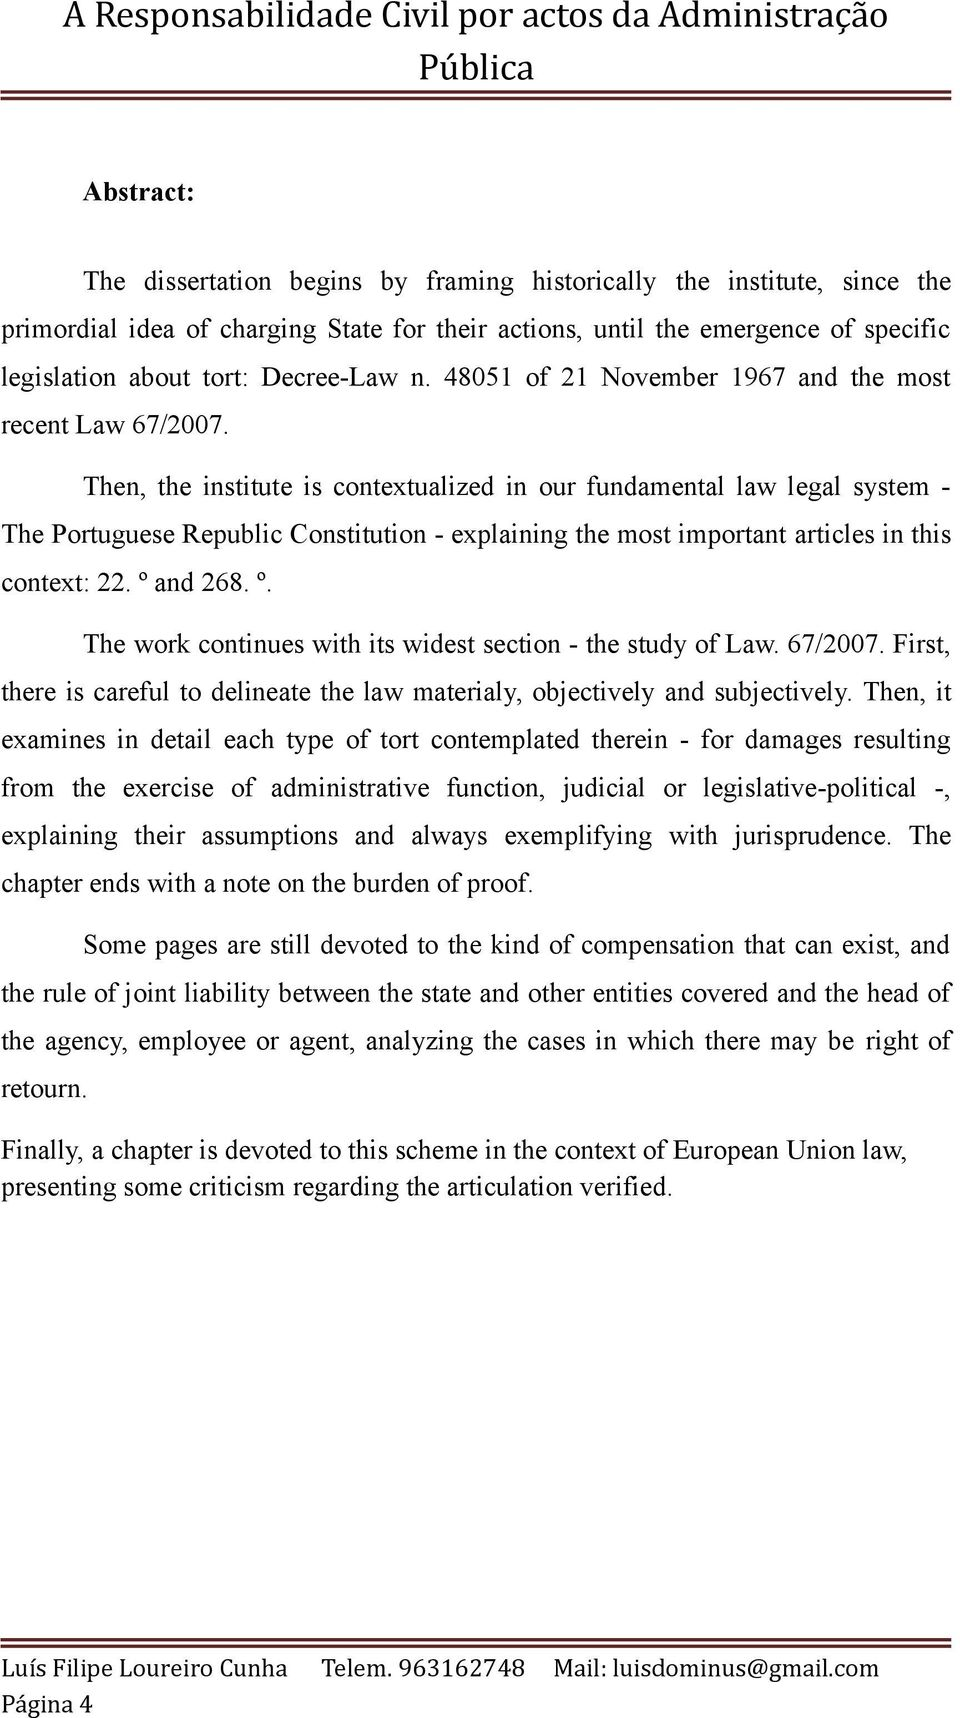 Then, the institute is contextualized in our fundamental law legal system - The Portuguese Republic Constitution - explaining the most important articles in this context: 22. º